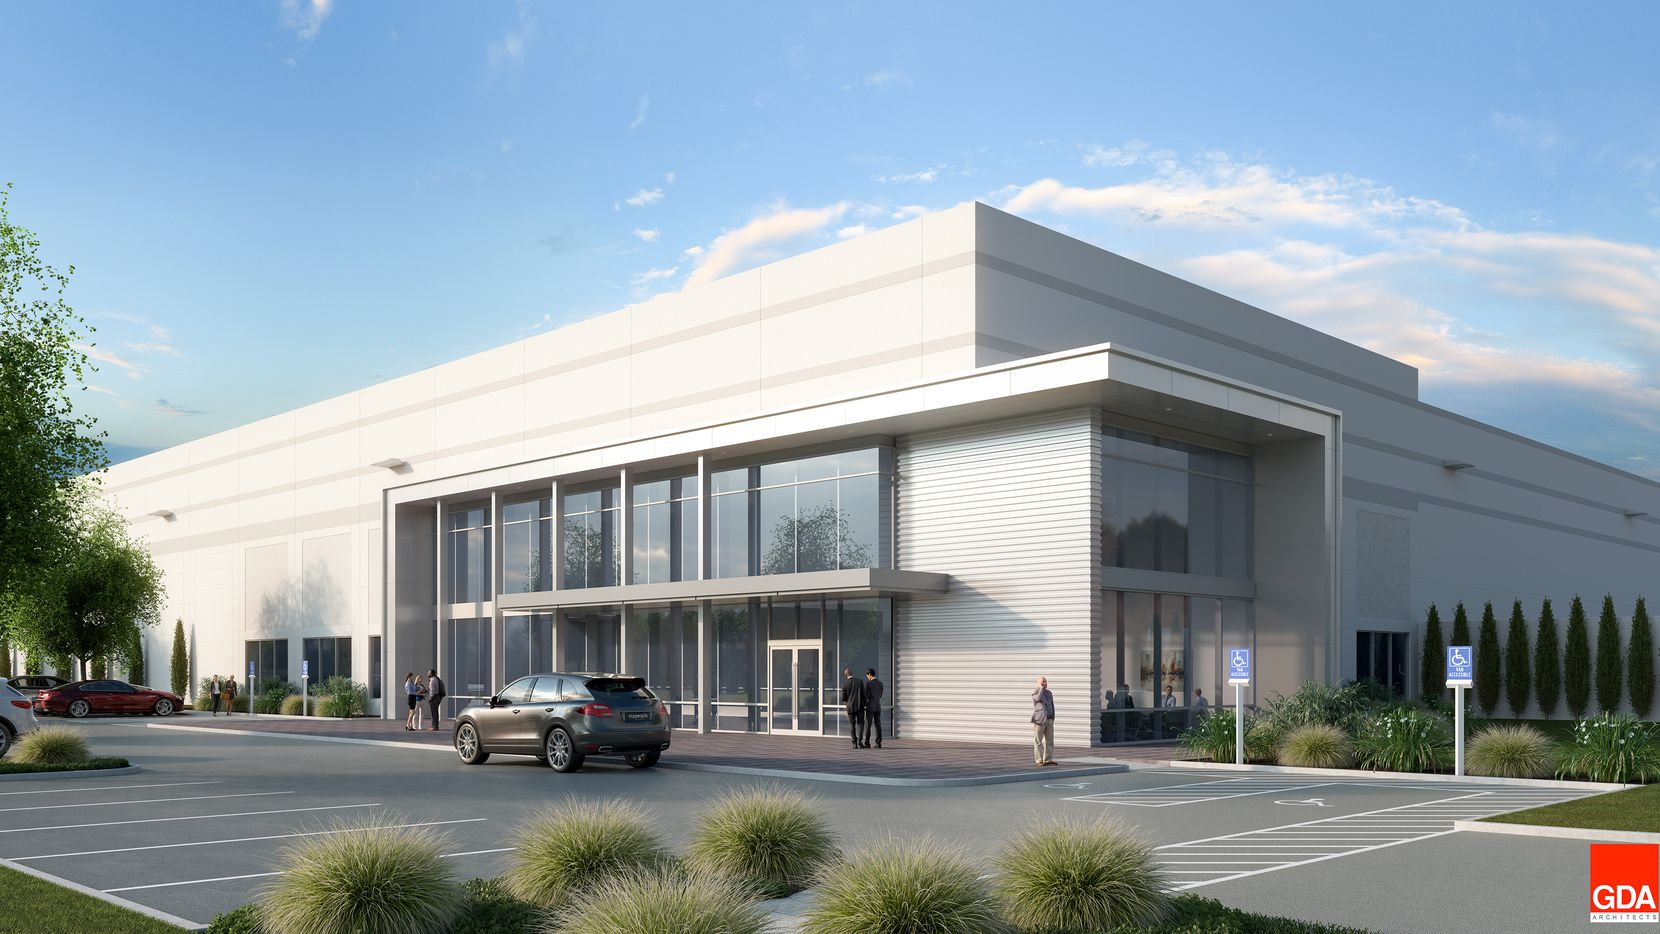 Developer Hillwood is starting more than 1 million square feet of speculative warehouse space in its AllianceTexas development North of Fort Worth.